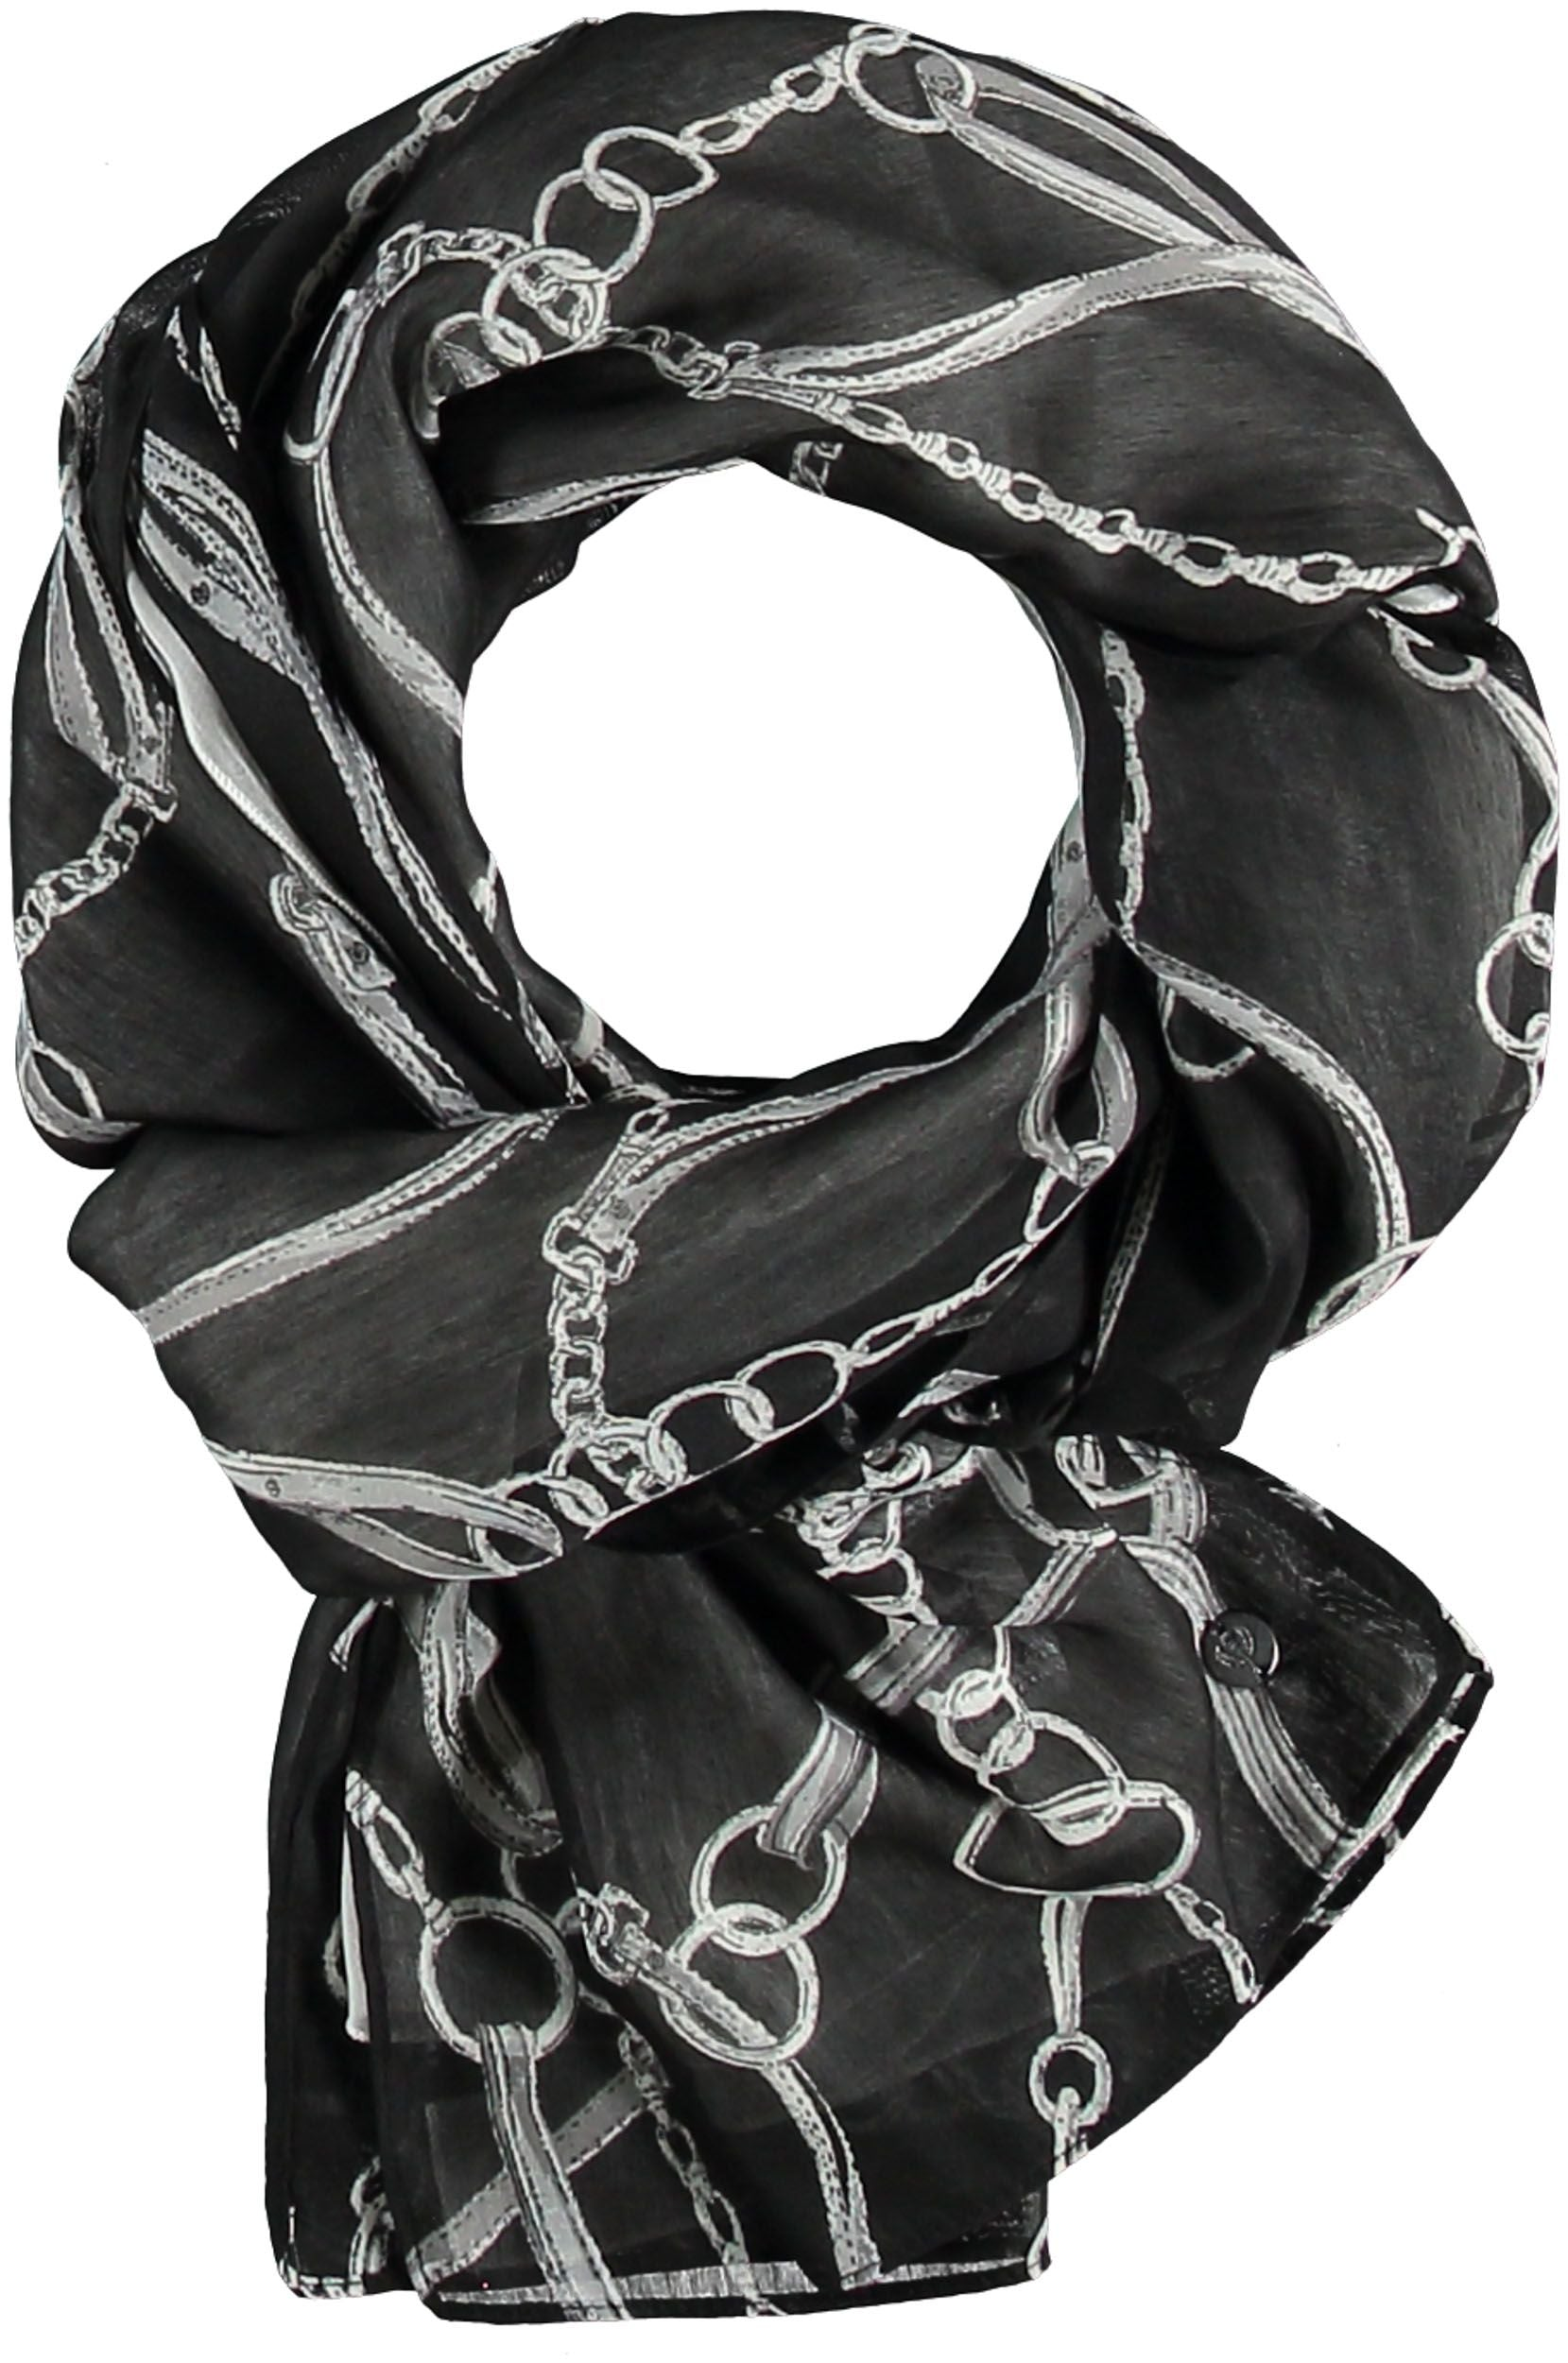 Links Polyester Print Scarf - Black Set